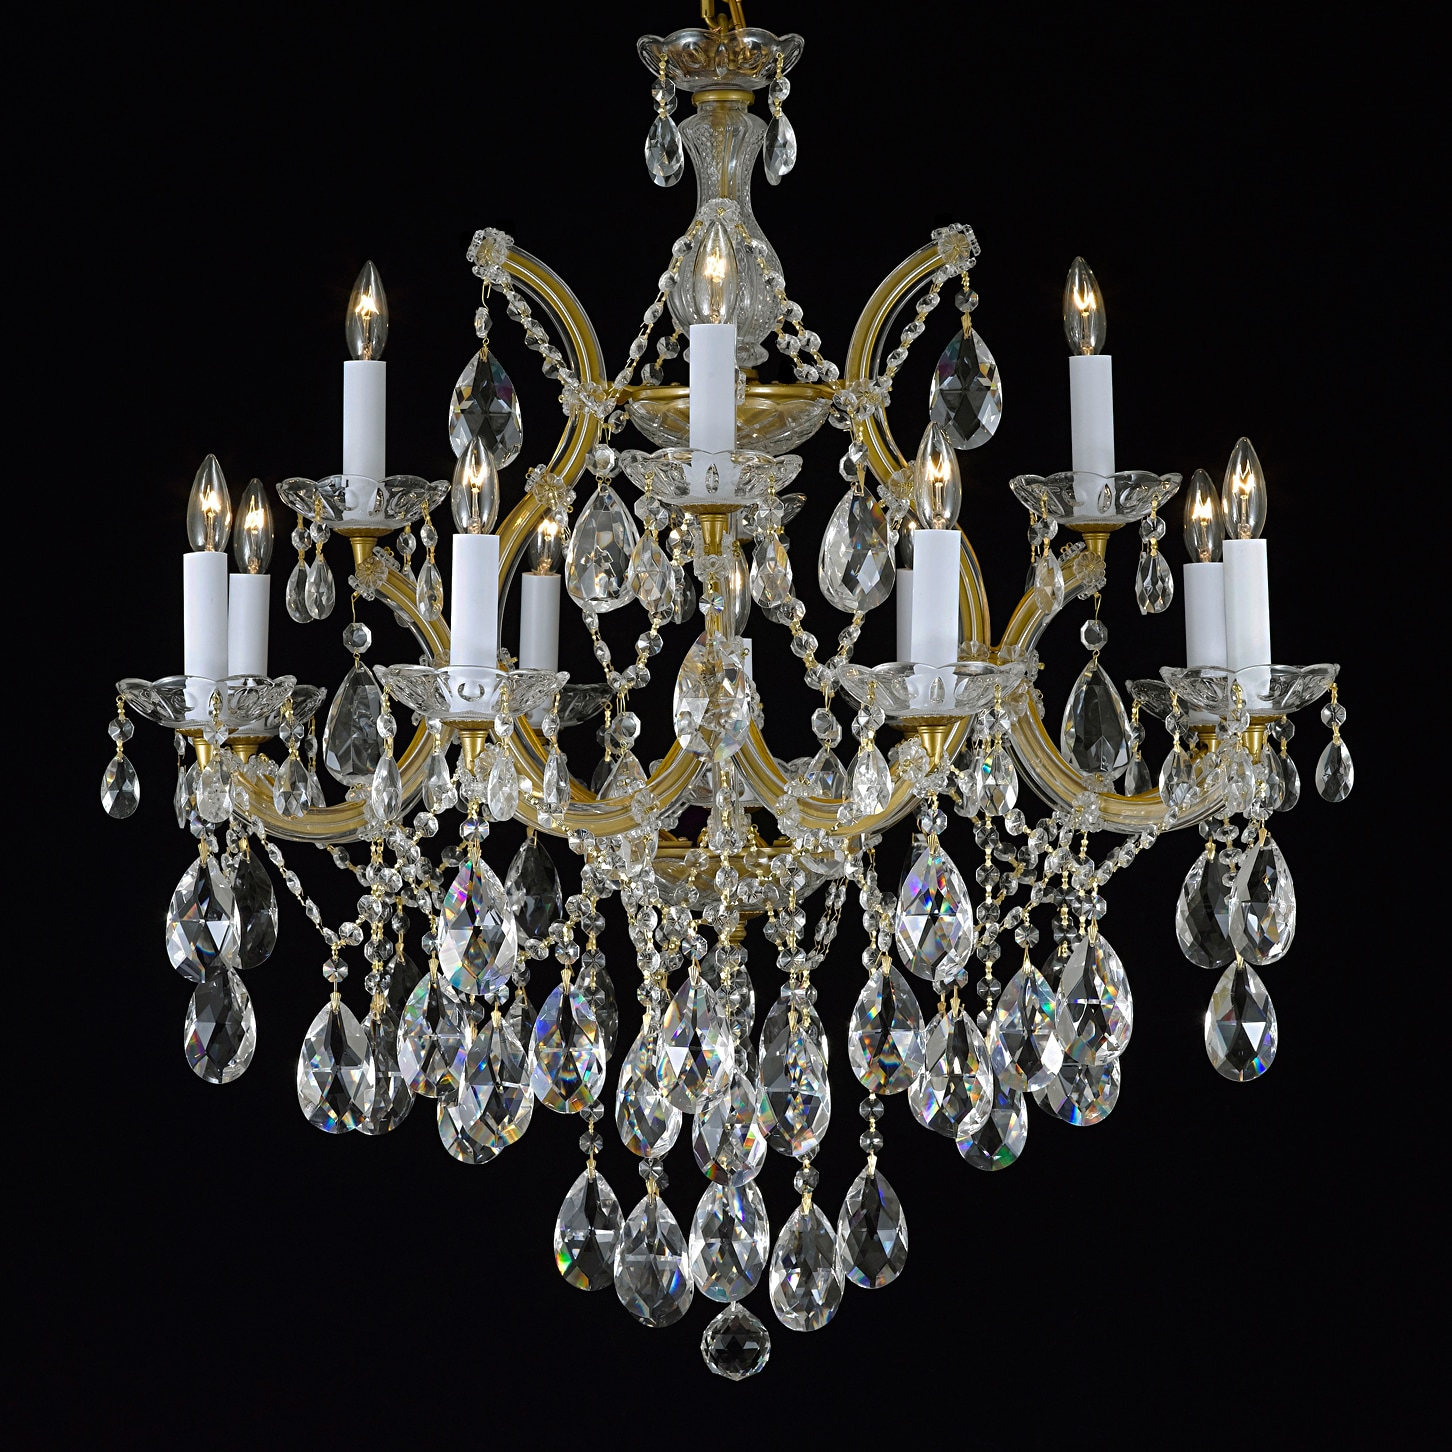 Shop Gallery Maria Theresa 13 light 2 tier Antique